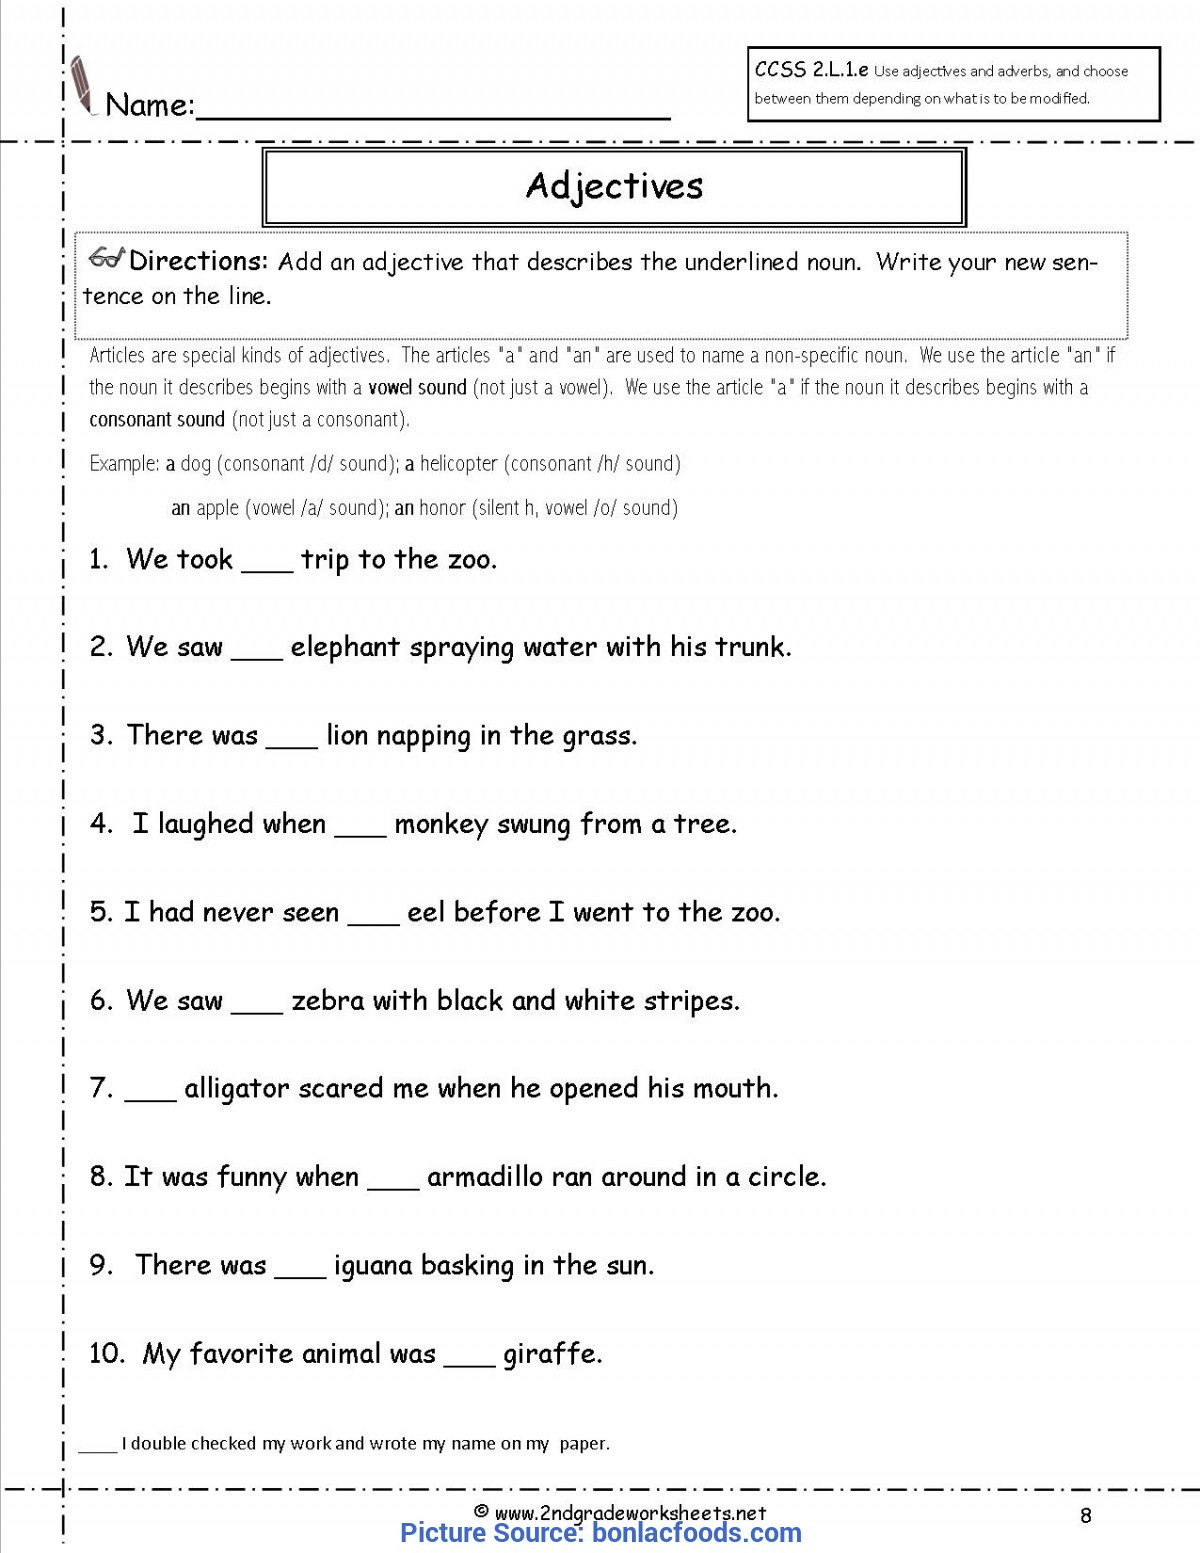 Synonym Worksheet for 2nd Grade Valuable 2nd Grade Lesson Plans Adjectives Worksheets for